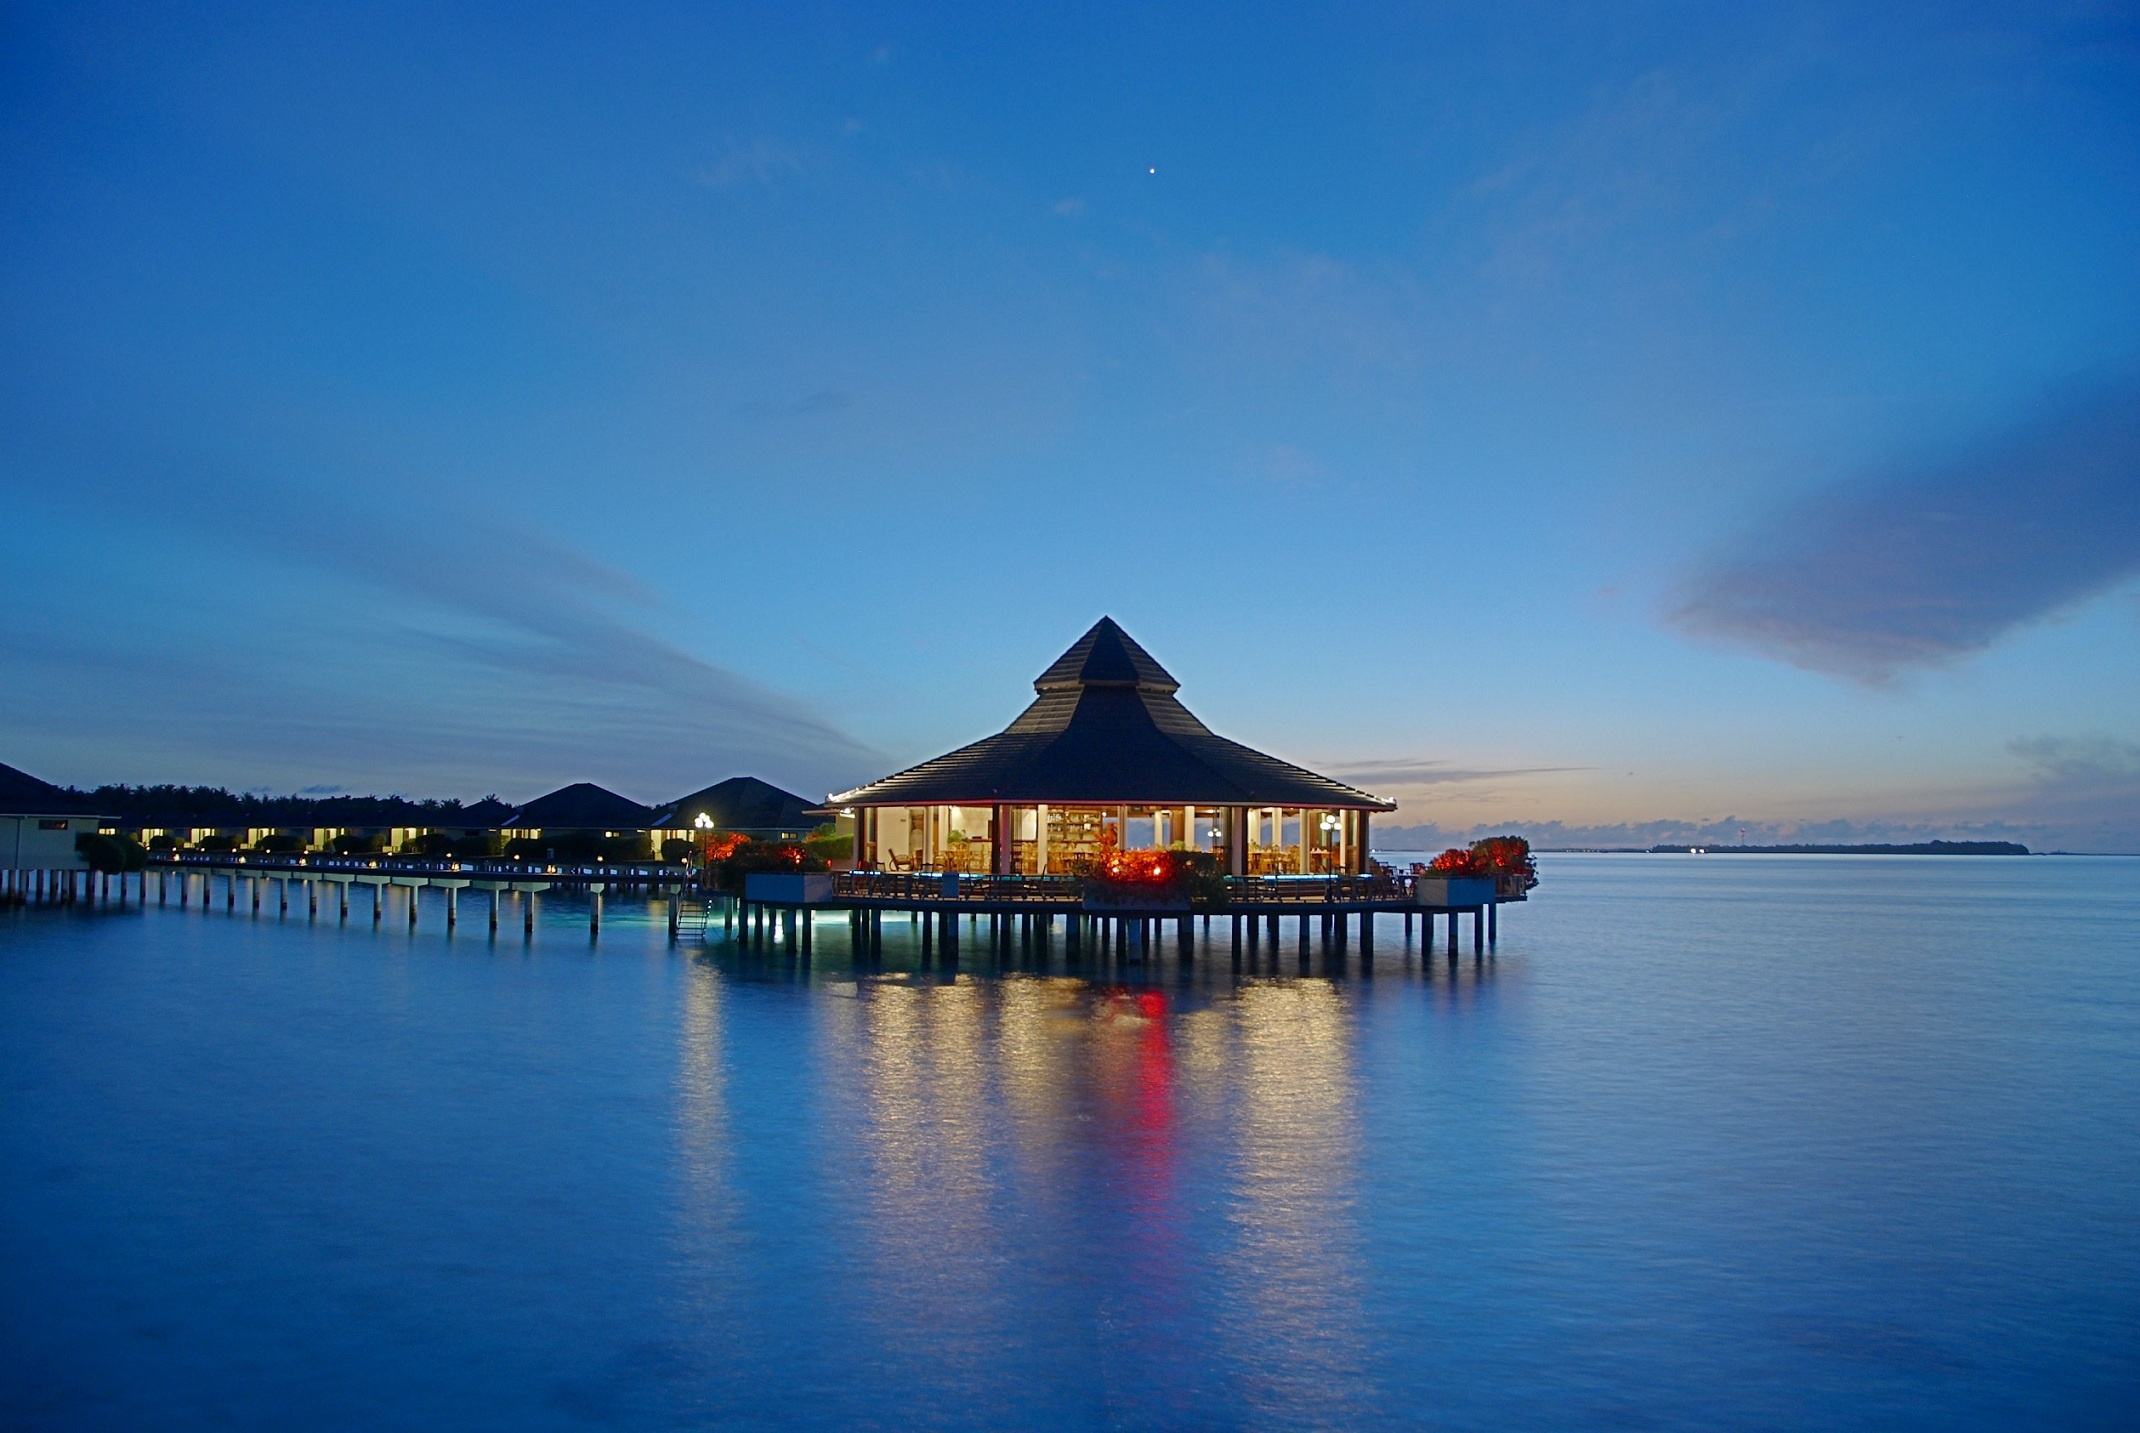 Water Bungalow Restaurants Maldives At Night